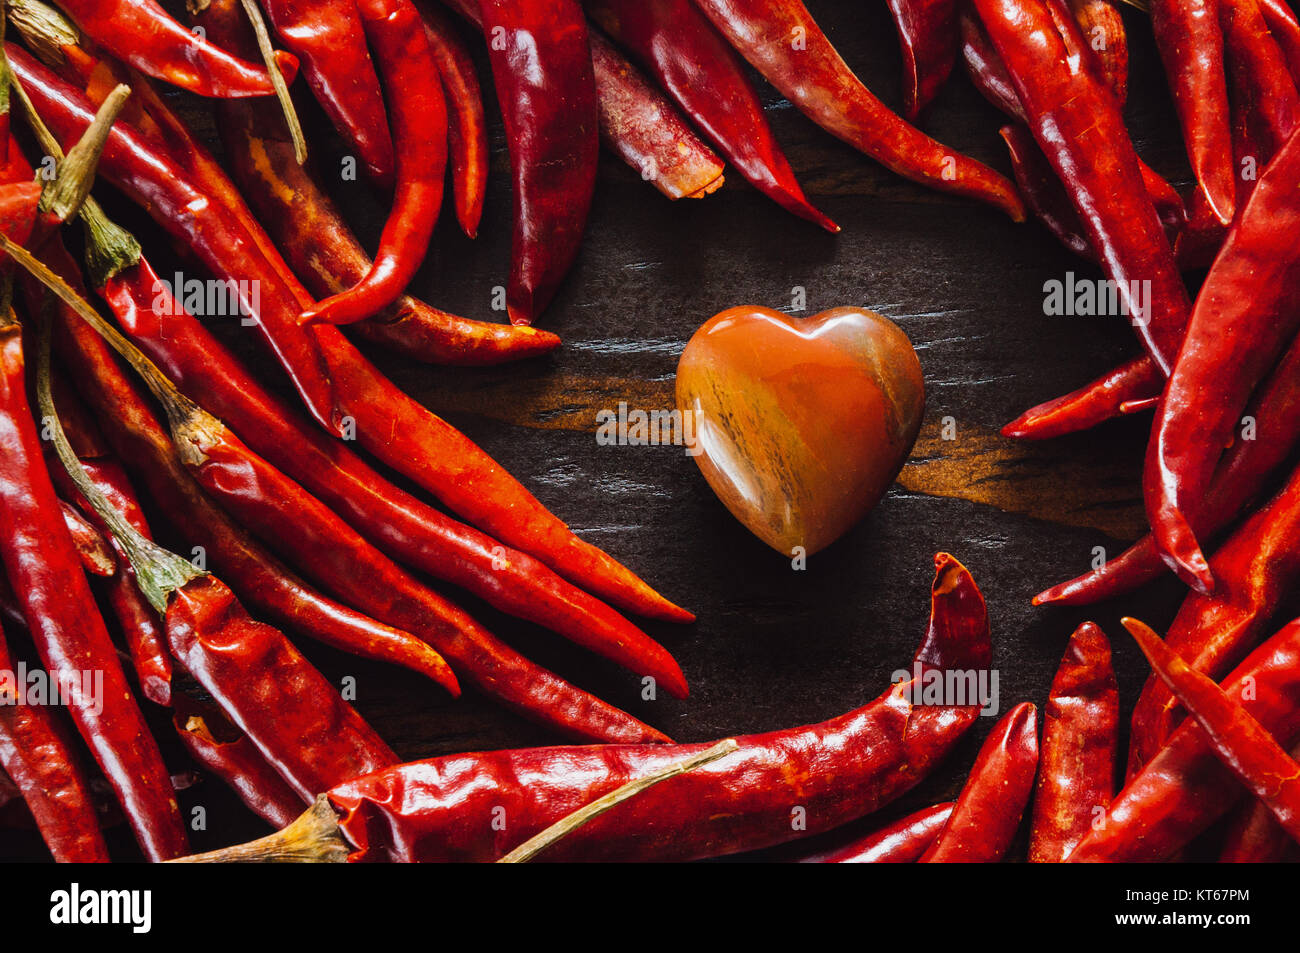 Dried Cayenne Peppers with Petrified Wood Heart - Stock Image